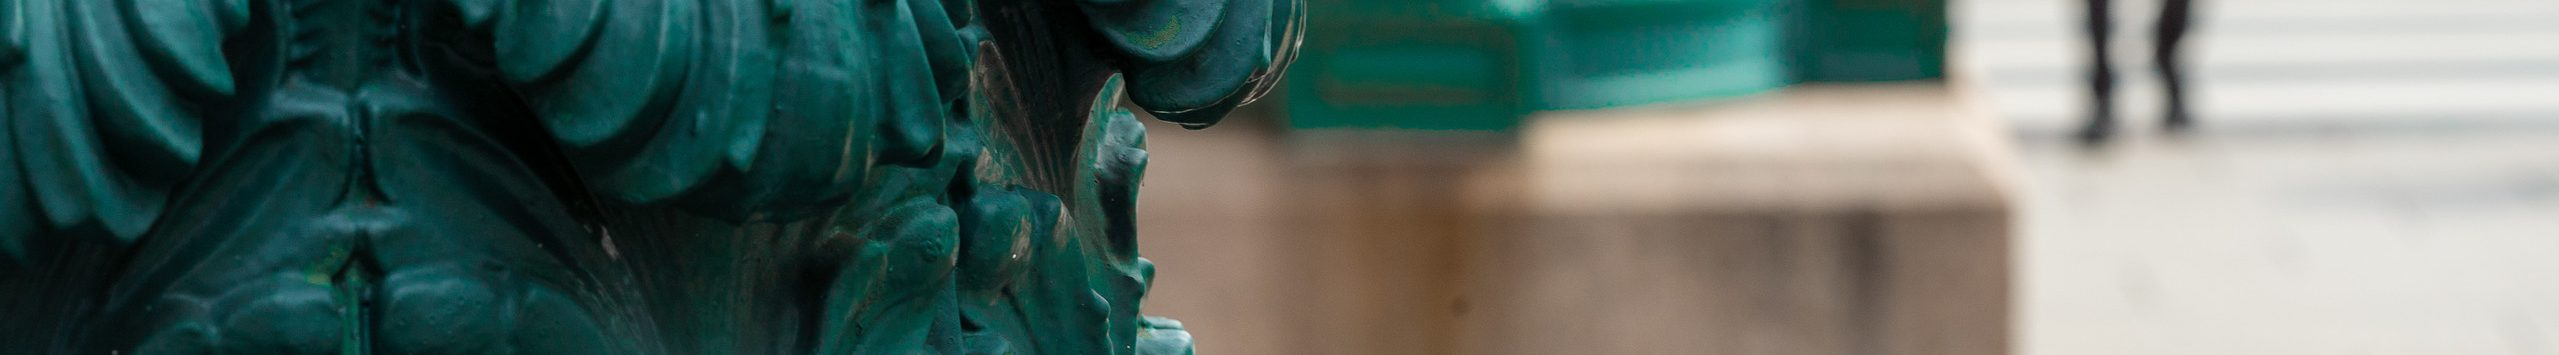 Detail of a photograph of a green post outside of the museum's exterior.